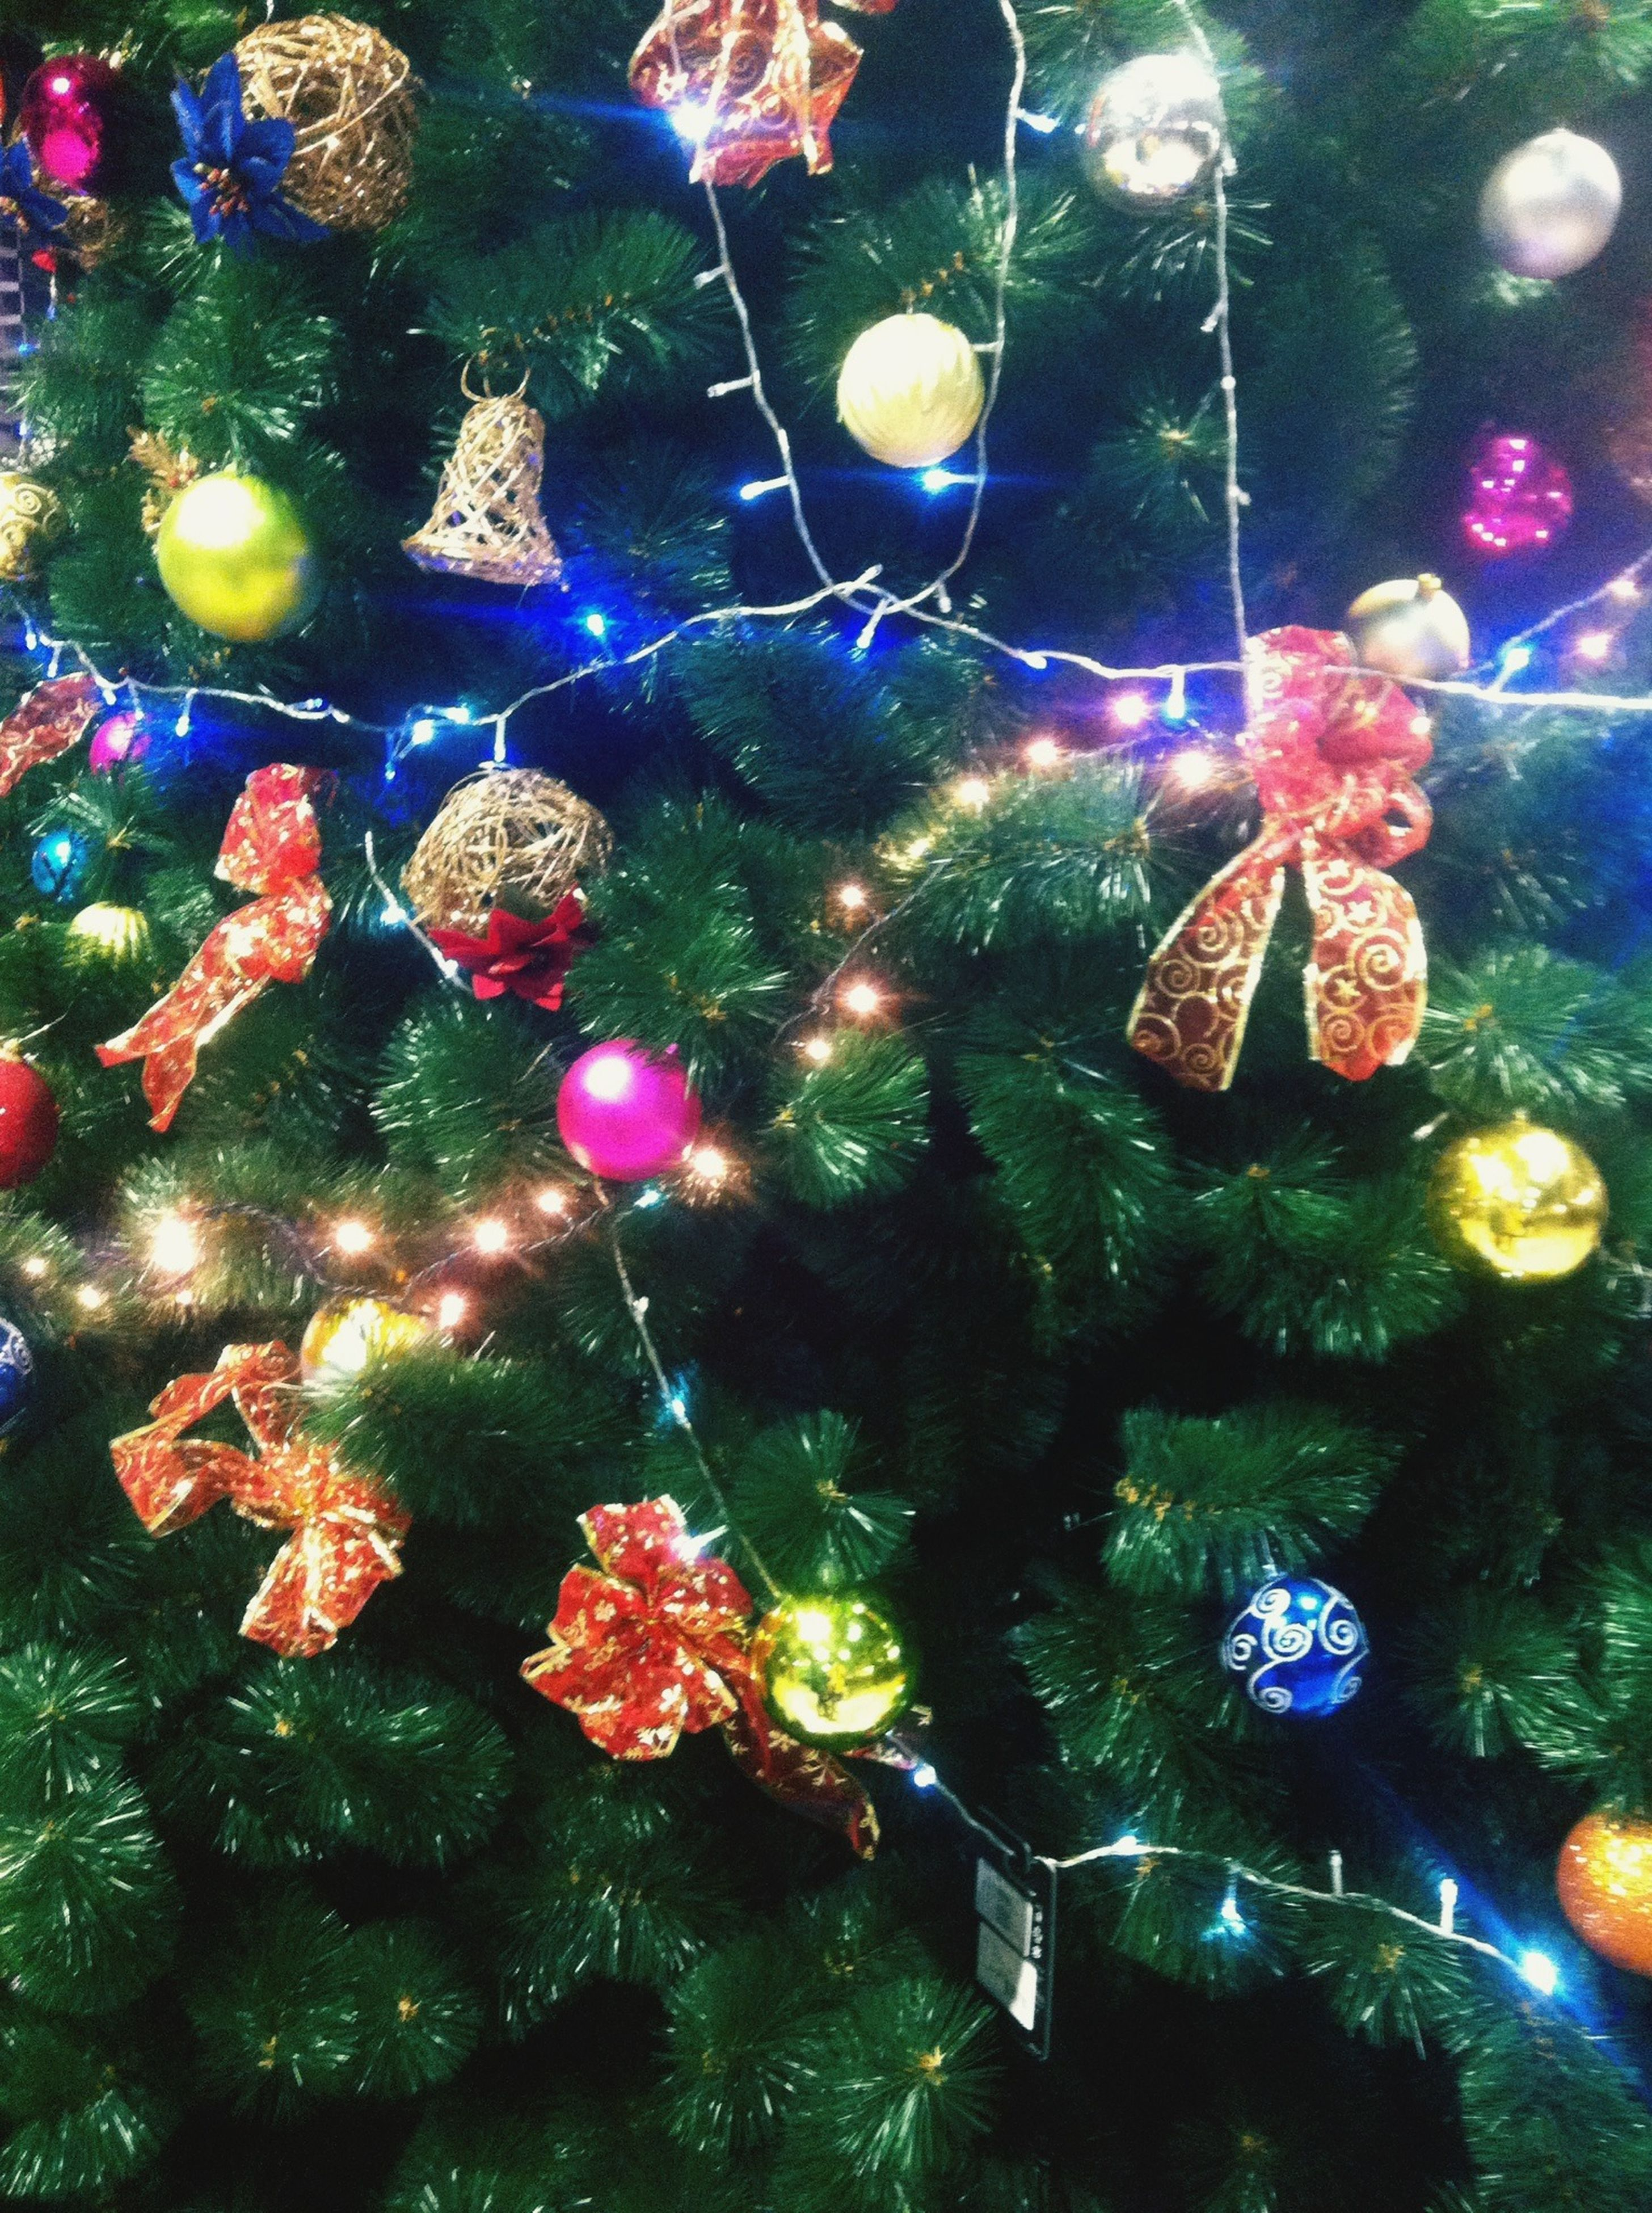 water, reflection, multi colored, decoration, celebration, christmas decoration, nature, christmas tree, no people, close-up, hanging, underwater, indoors, beauty in nature, christmas ornament, pink color, christmas, pond, transparent